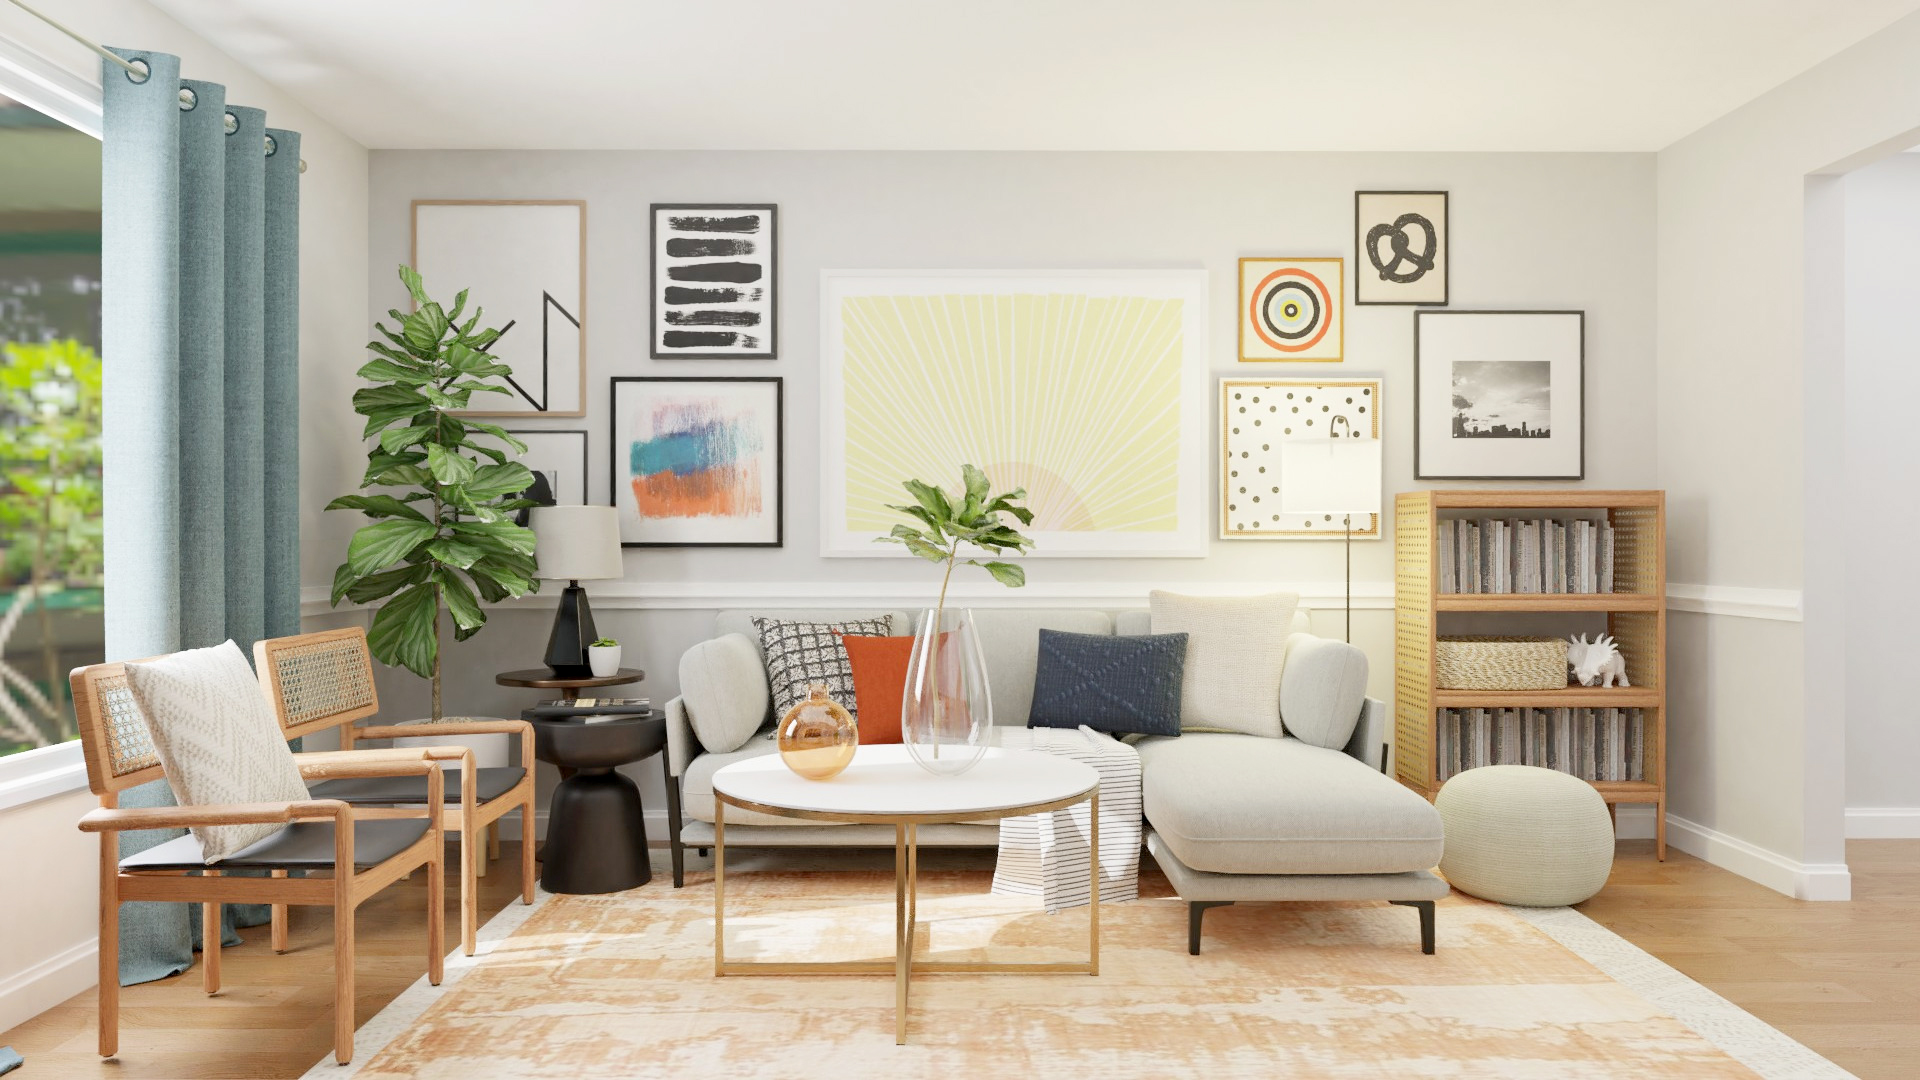 7 Living Room Decor Ideas to Freshen Up Your Home's Look and Feel for  Spring | Spacejoy